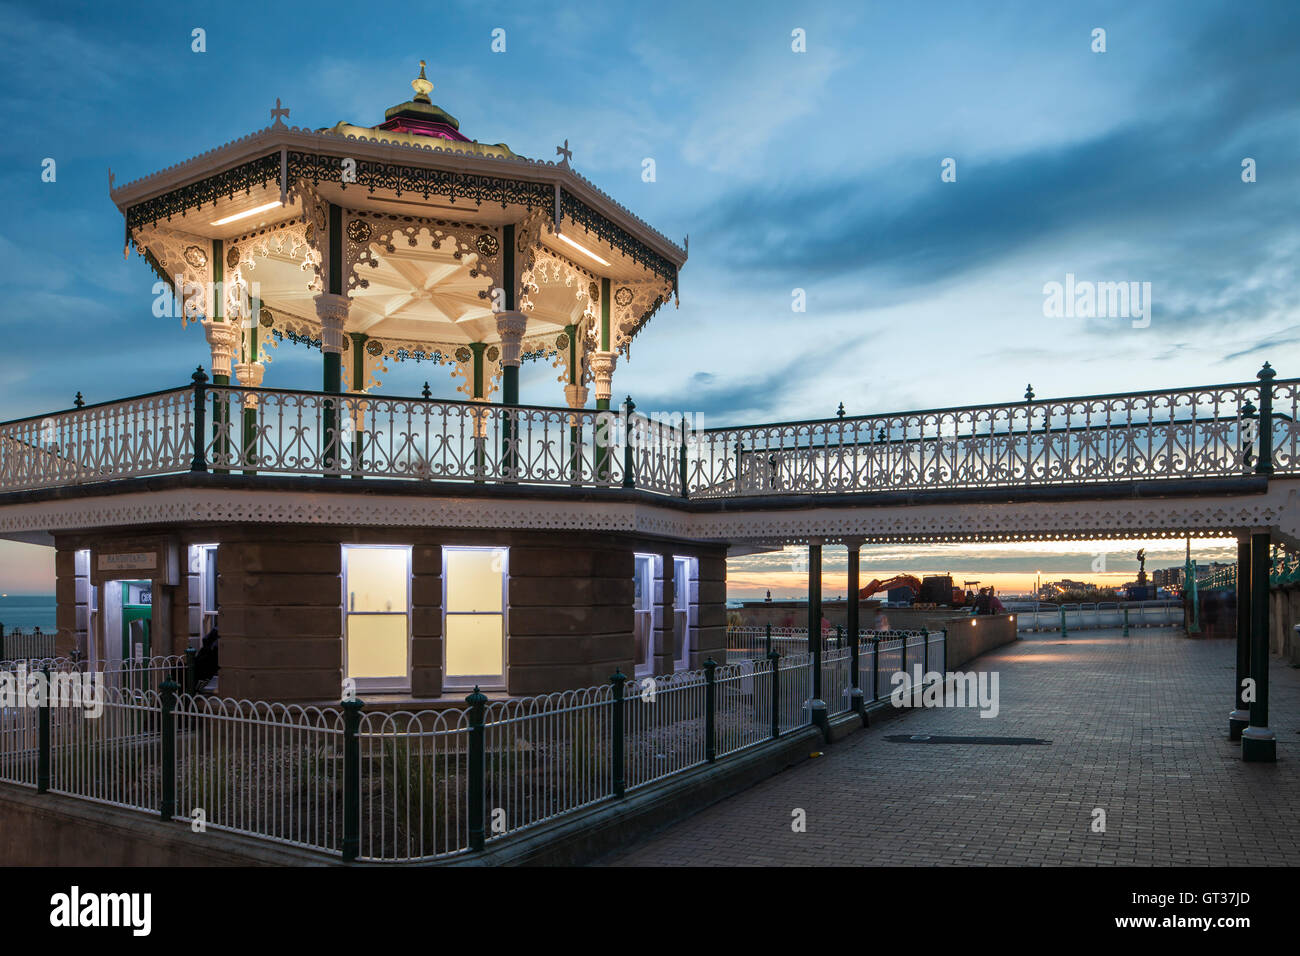 Summer evening at the Bandstand on Brighton seafront, East Sussex, England, UK. - Stock Image